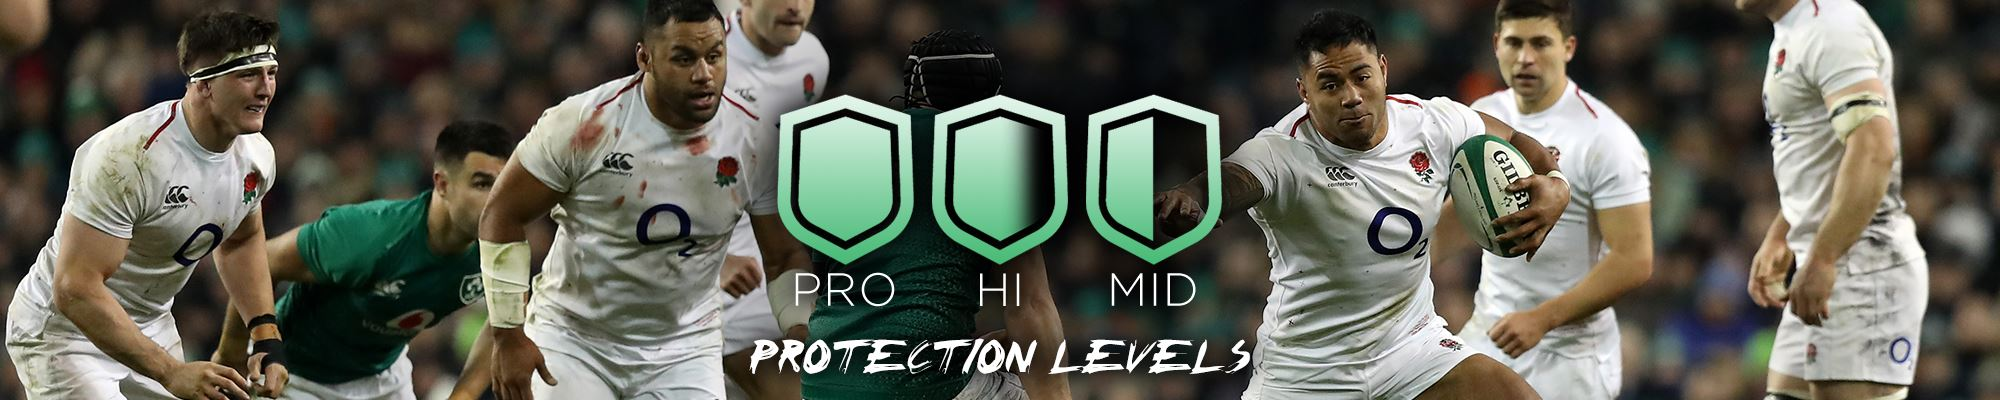 Protection levels banner